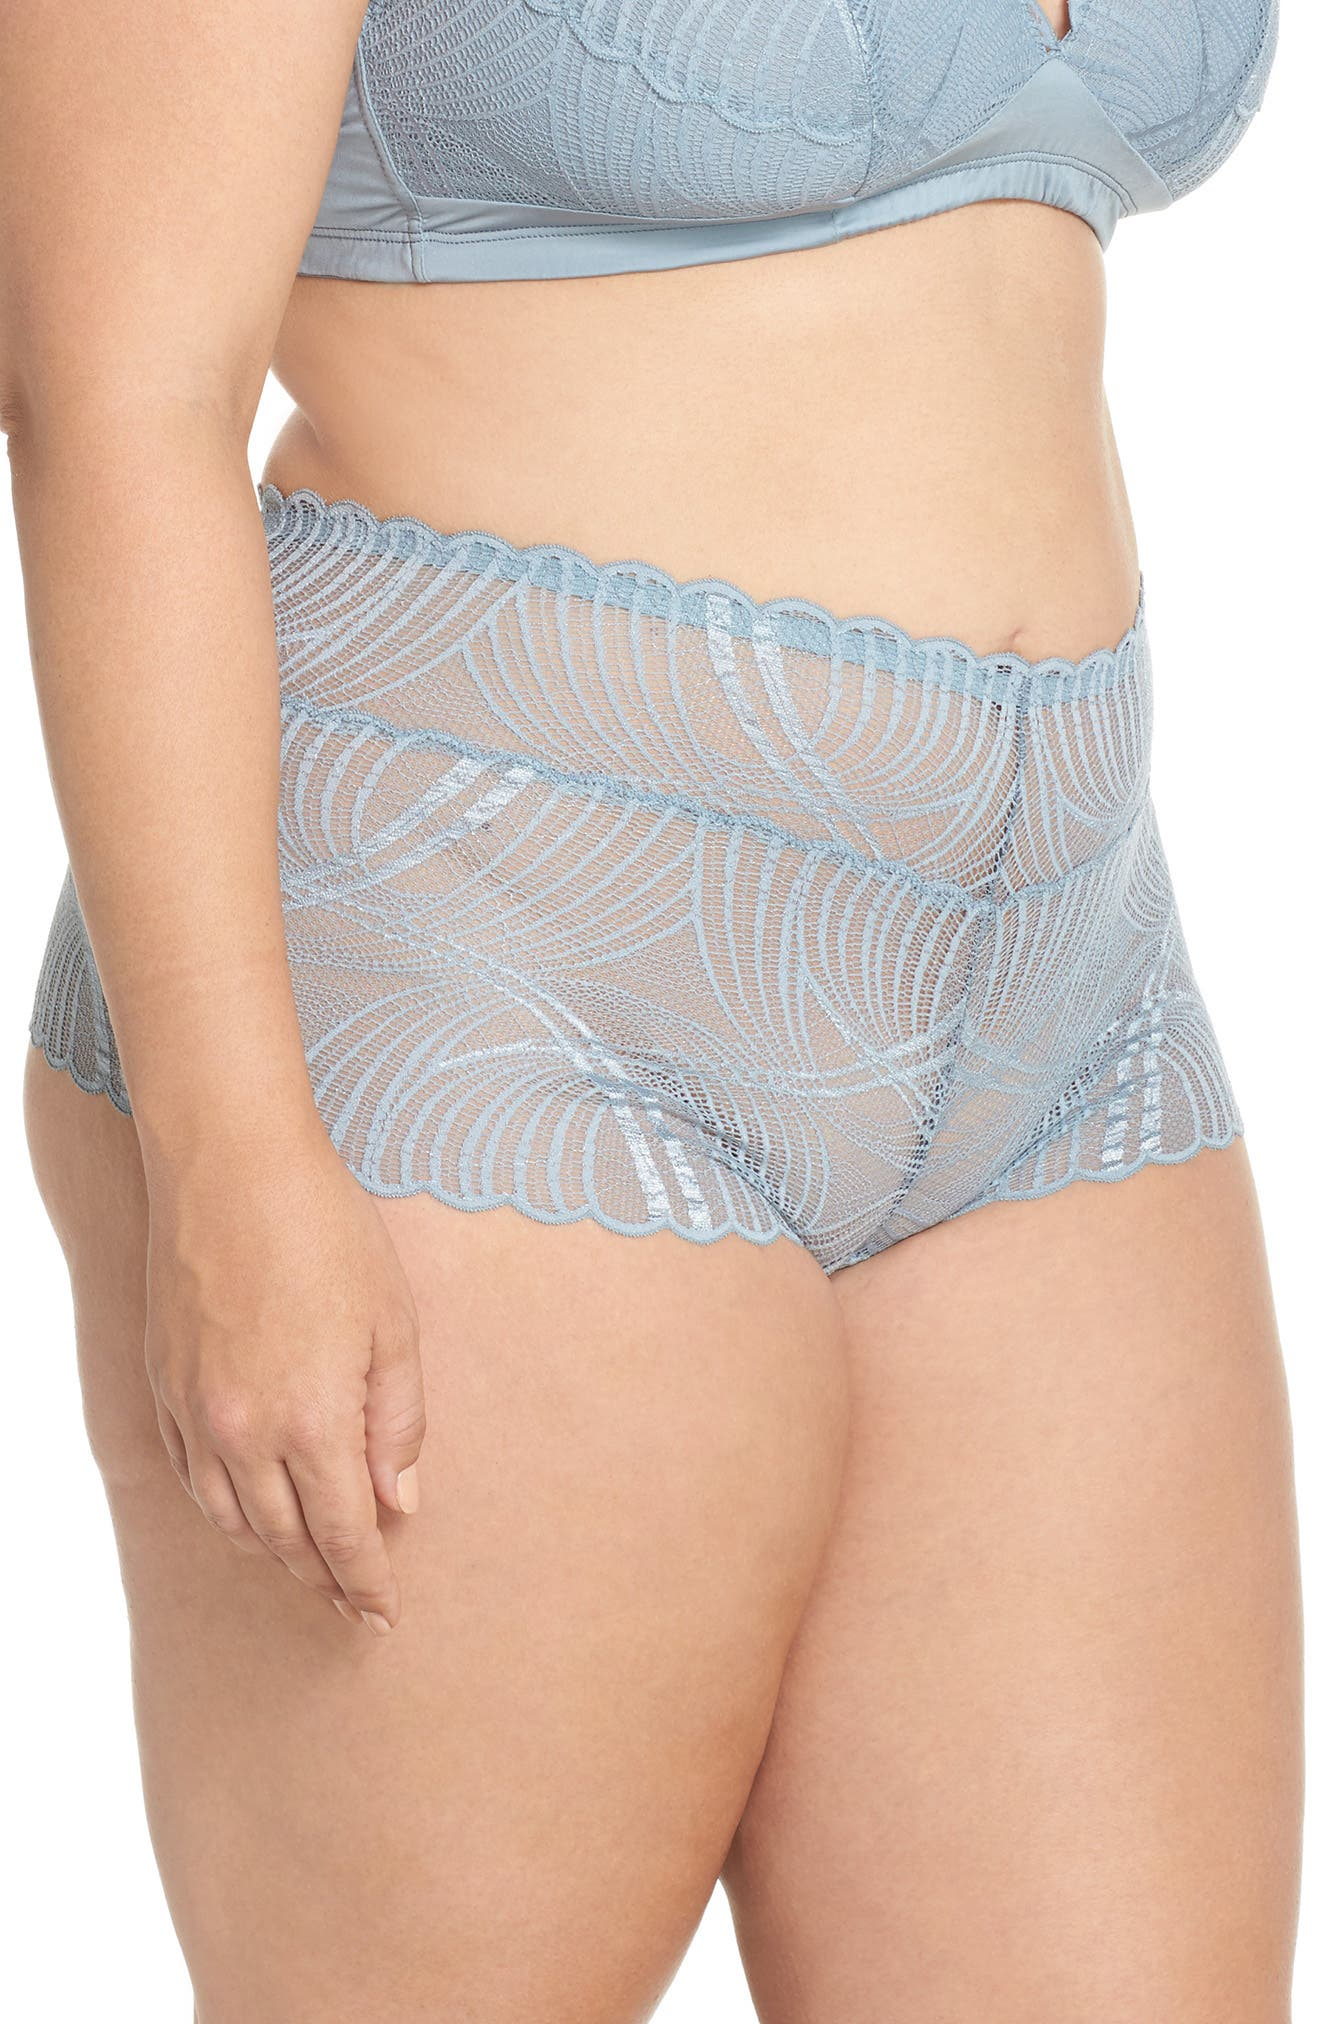 Minoa Naughtie Open Gusset Boyshorts,                             Alternate thumbnail 11, color,